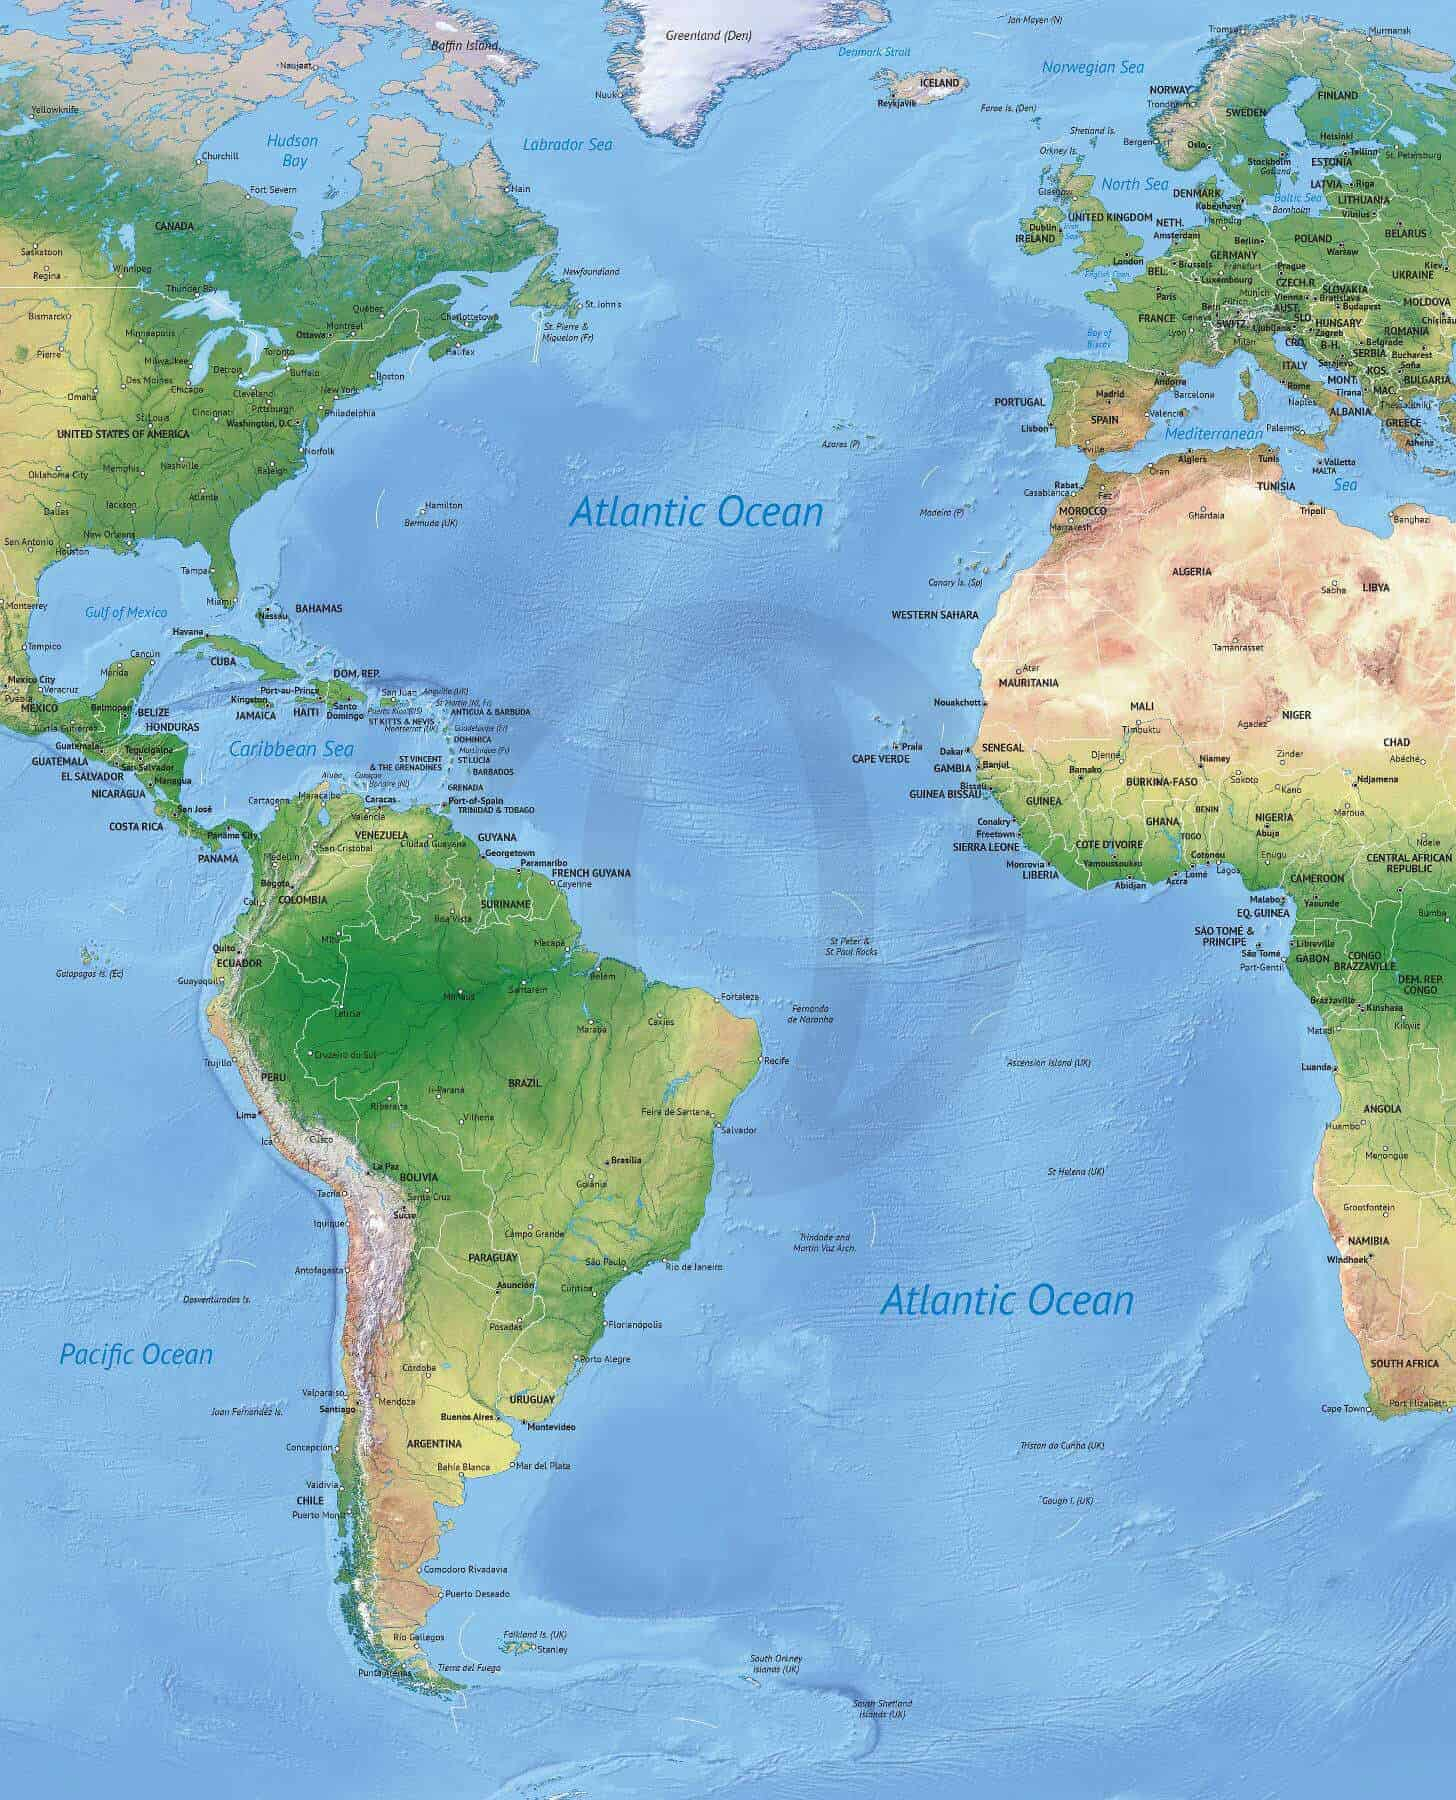 Map Of The Atlantic Ocean Vector Map of the Atlantic Ocean political with shaded relief